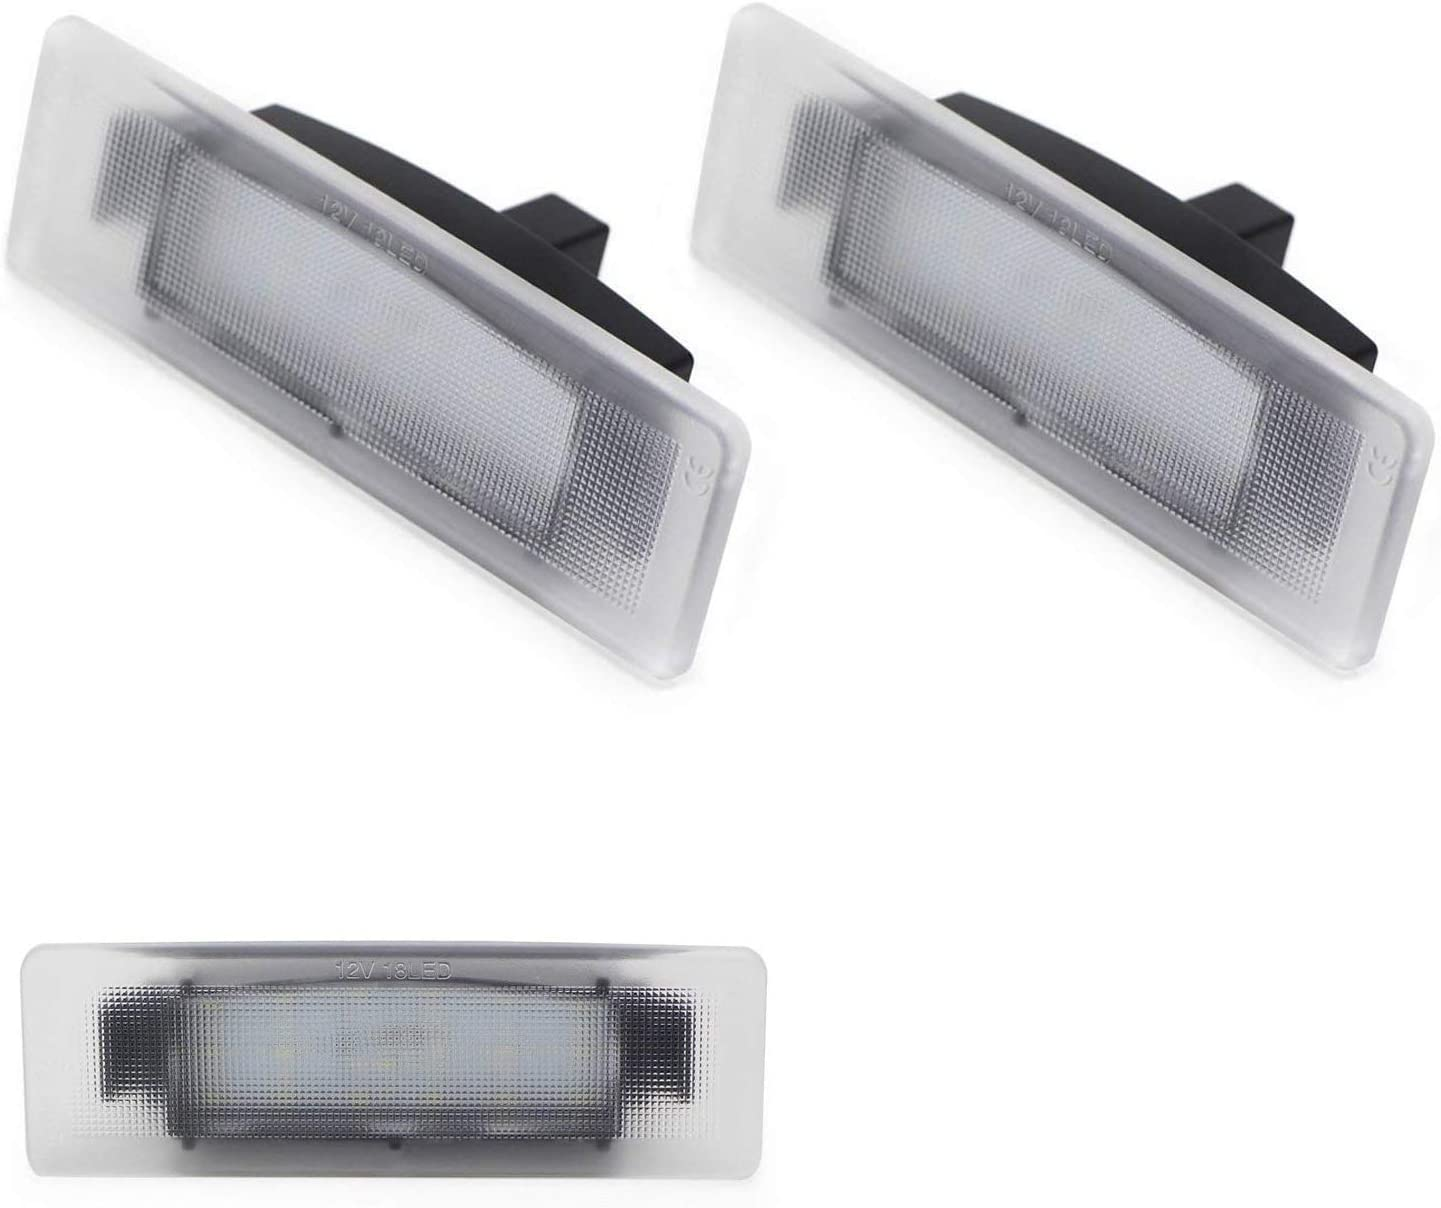 2009-16 Genesis Coupe iJDMTOY OEM-Fit 3W Full LED License Plate Light Kit Compatible with Hyundai 2011-17 Veloster Kia 2009-19 Soul Powered by 18-SMD Xenon White LED Diodes